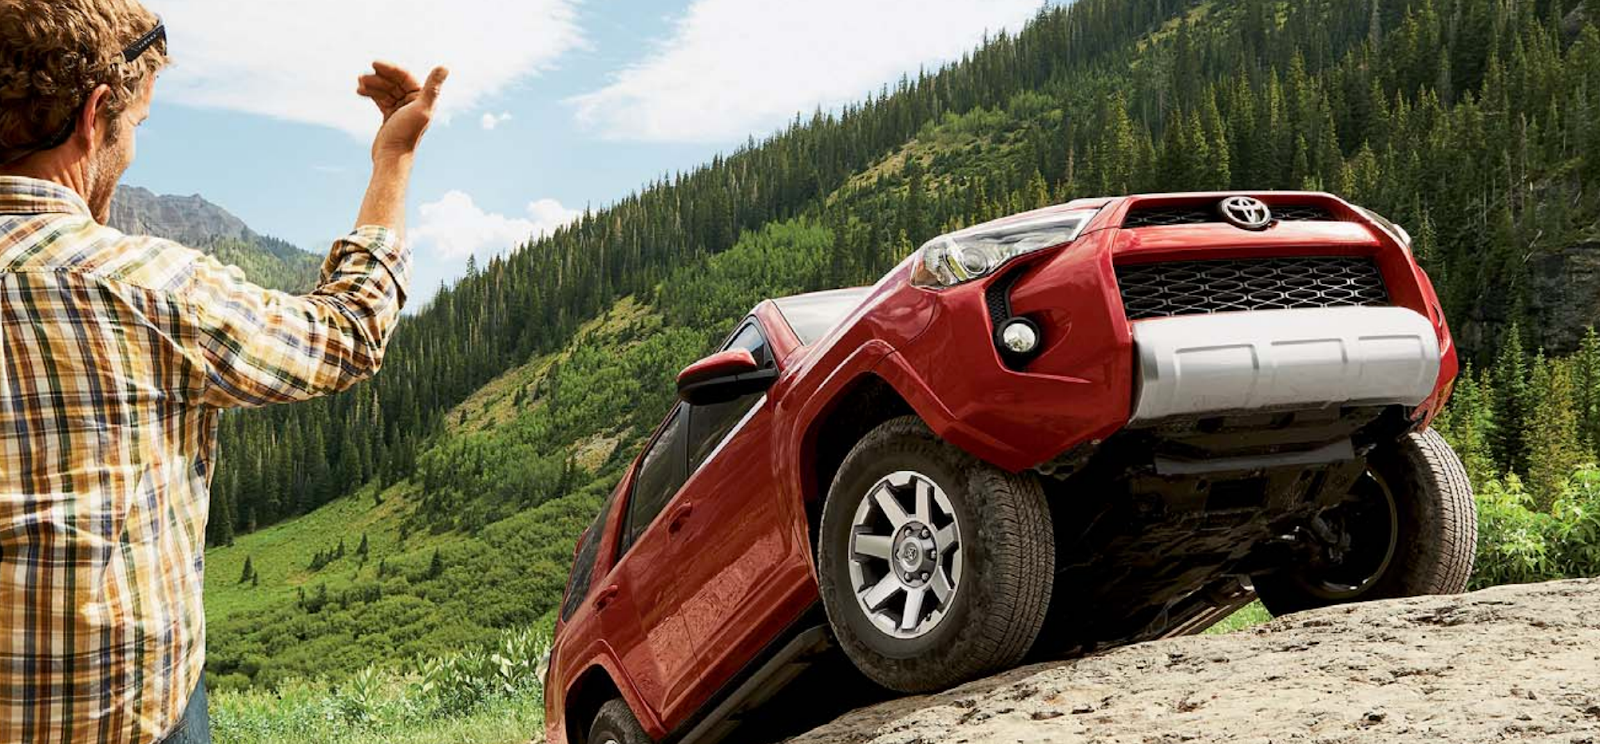 Toyota in Burnaby - 2016 4Runner Red - Greater Vancouver Toyota Dealer